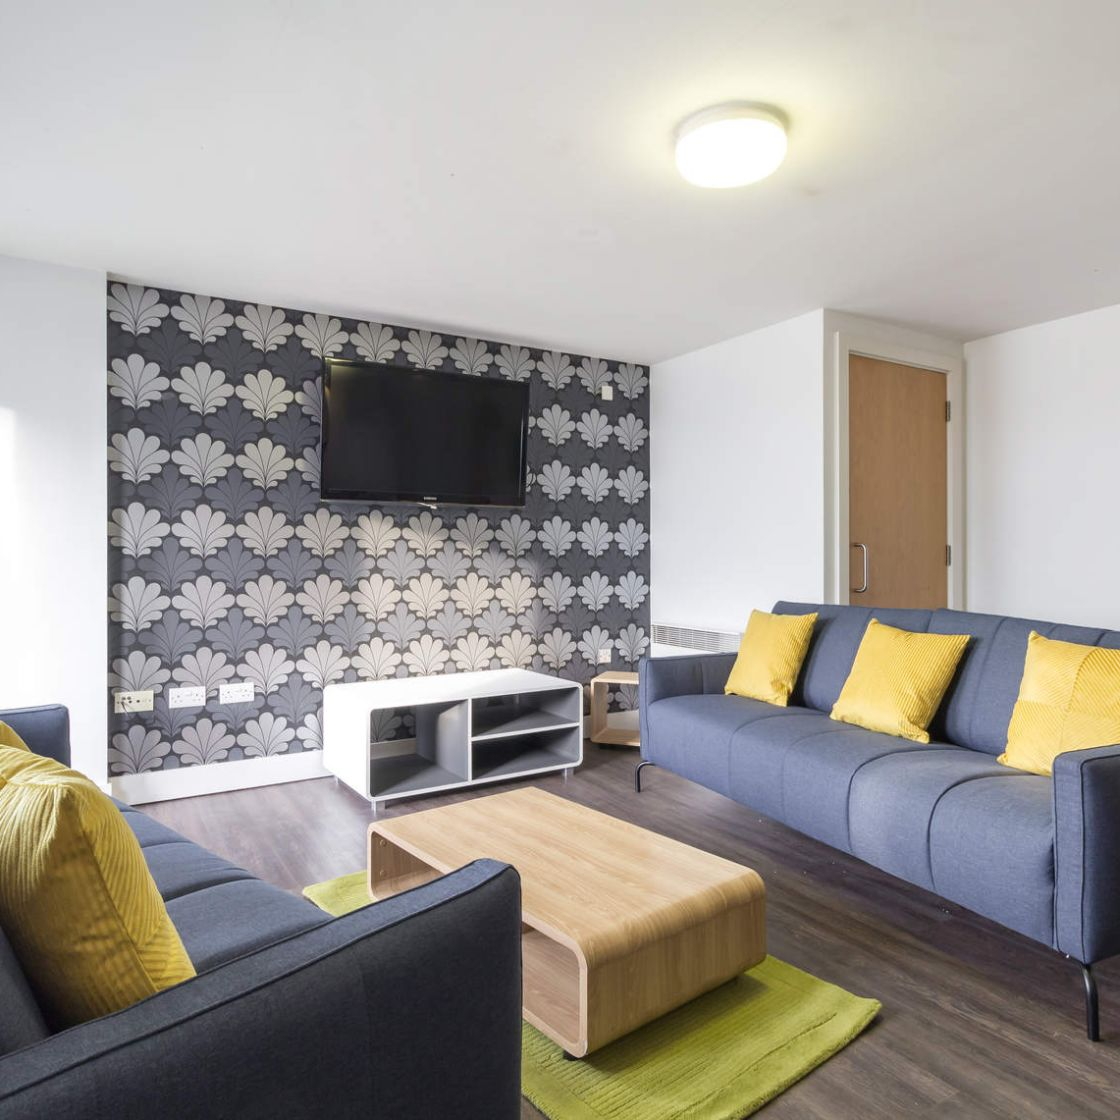 Shared lounge with sofas, coffee table and flat screen TV. Student Accommodation in Leeds. IconInc, Triangle